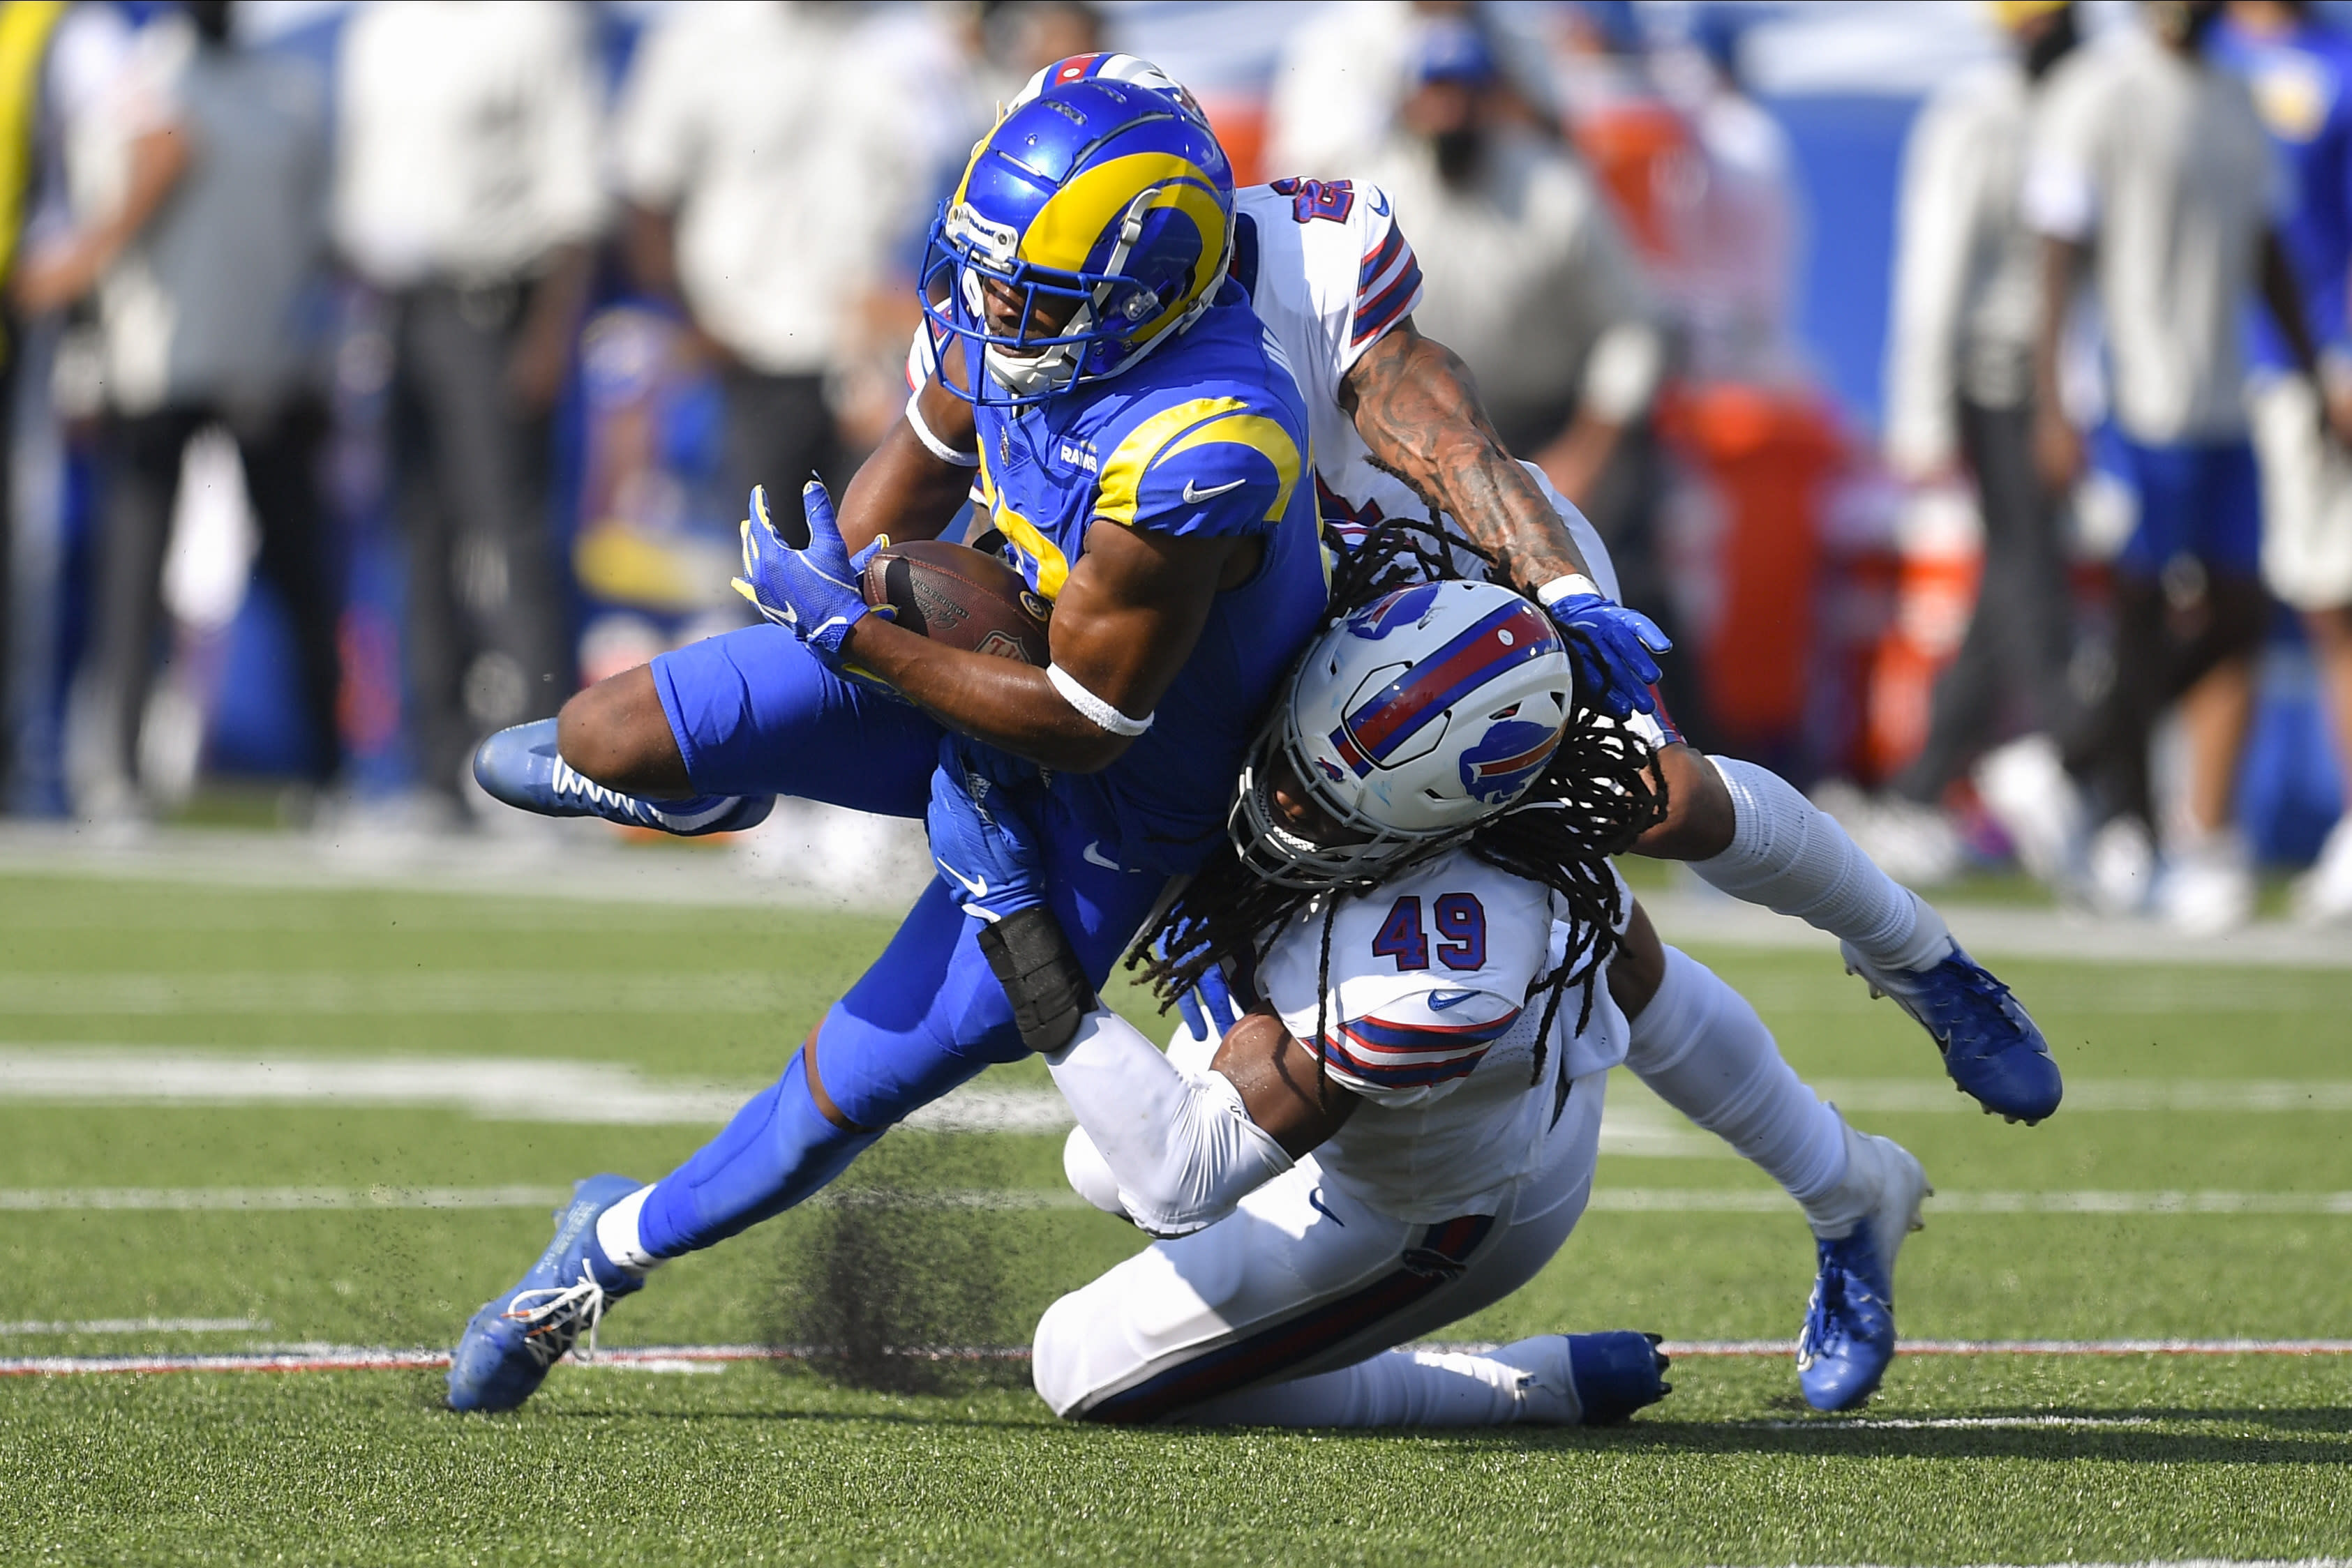 Los Angeles Rams' Robert Woods, left, is tackled b Buffalo Bills' Tremaine Edmunds, right, during the second half of an NFL football game Sunday, Sept. 27, 2020, in Orchard Park, N.Y. (AP Photo/Adrian Kraus)